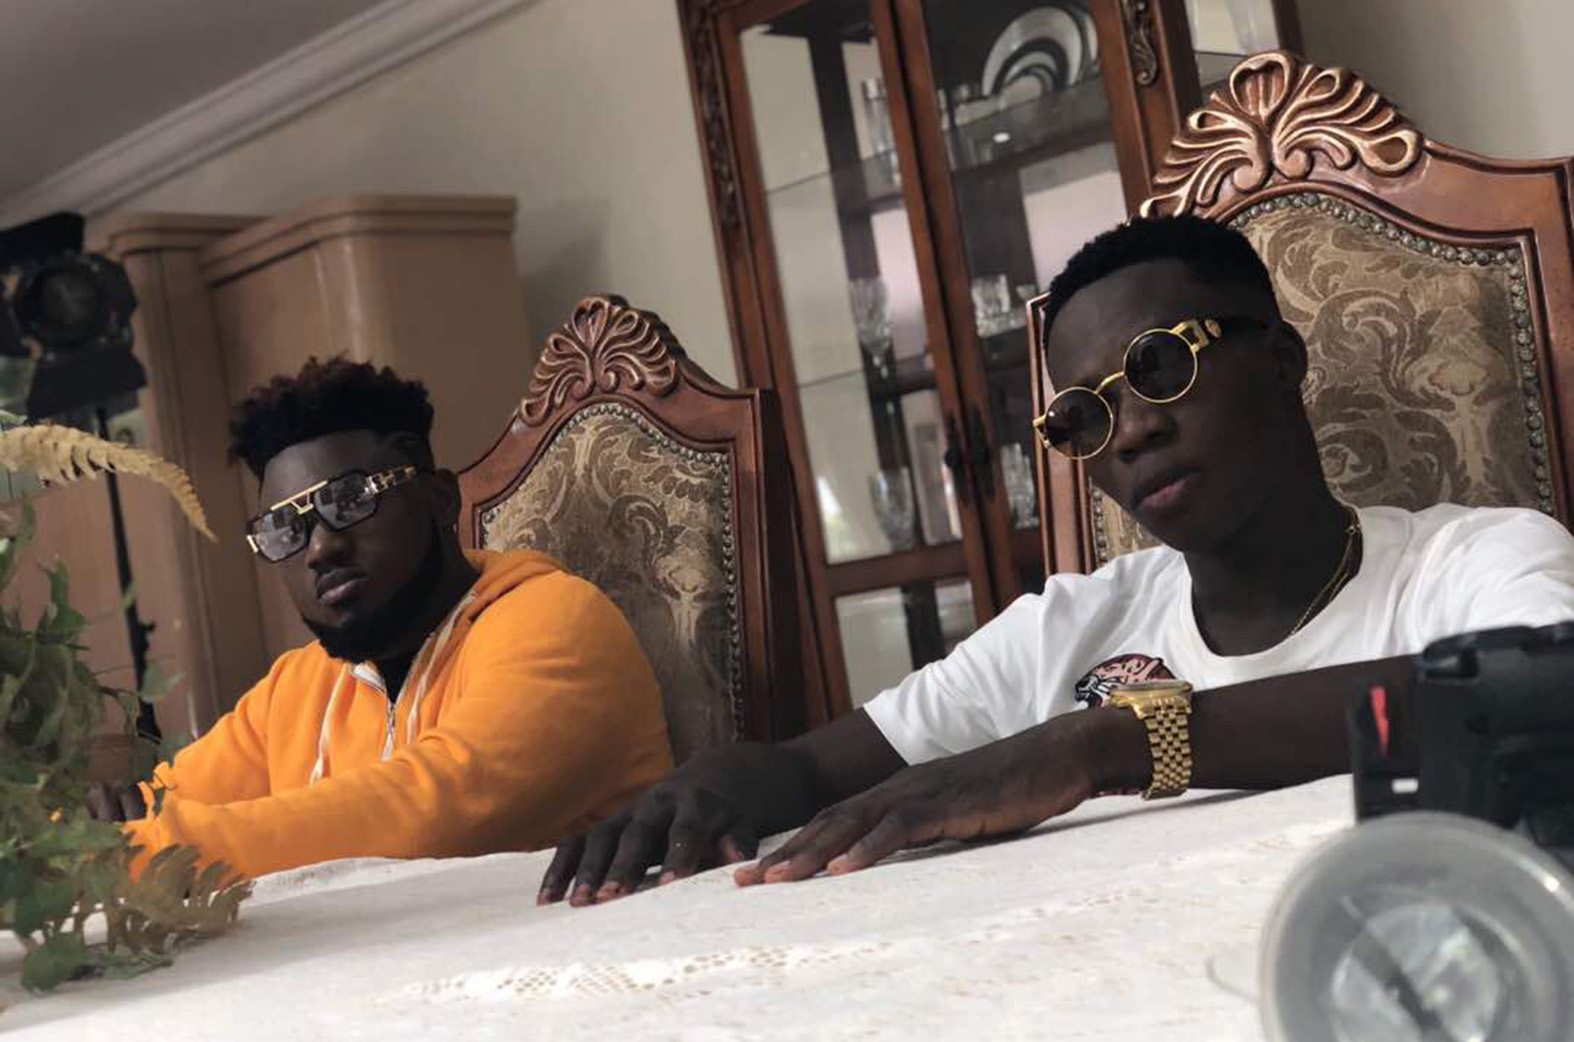 Celebrity Barber to drop first song featuring Donzy, DatBeatgod & Yebo